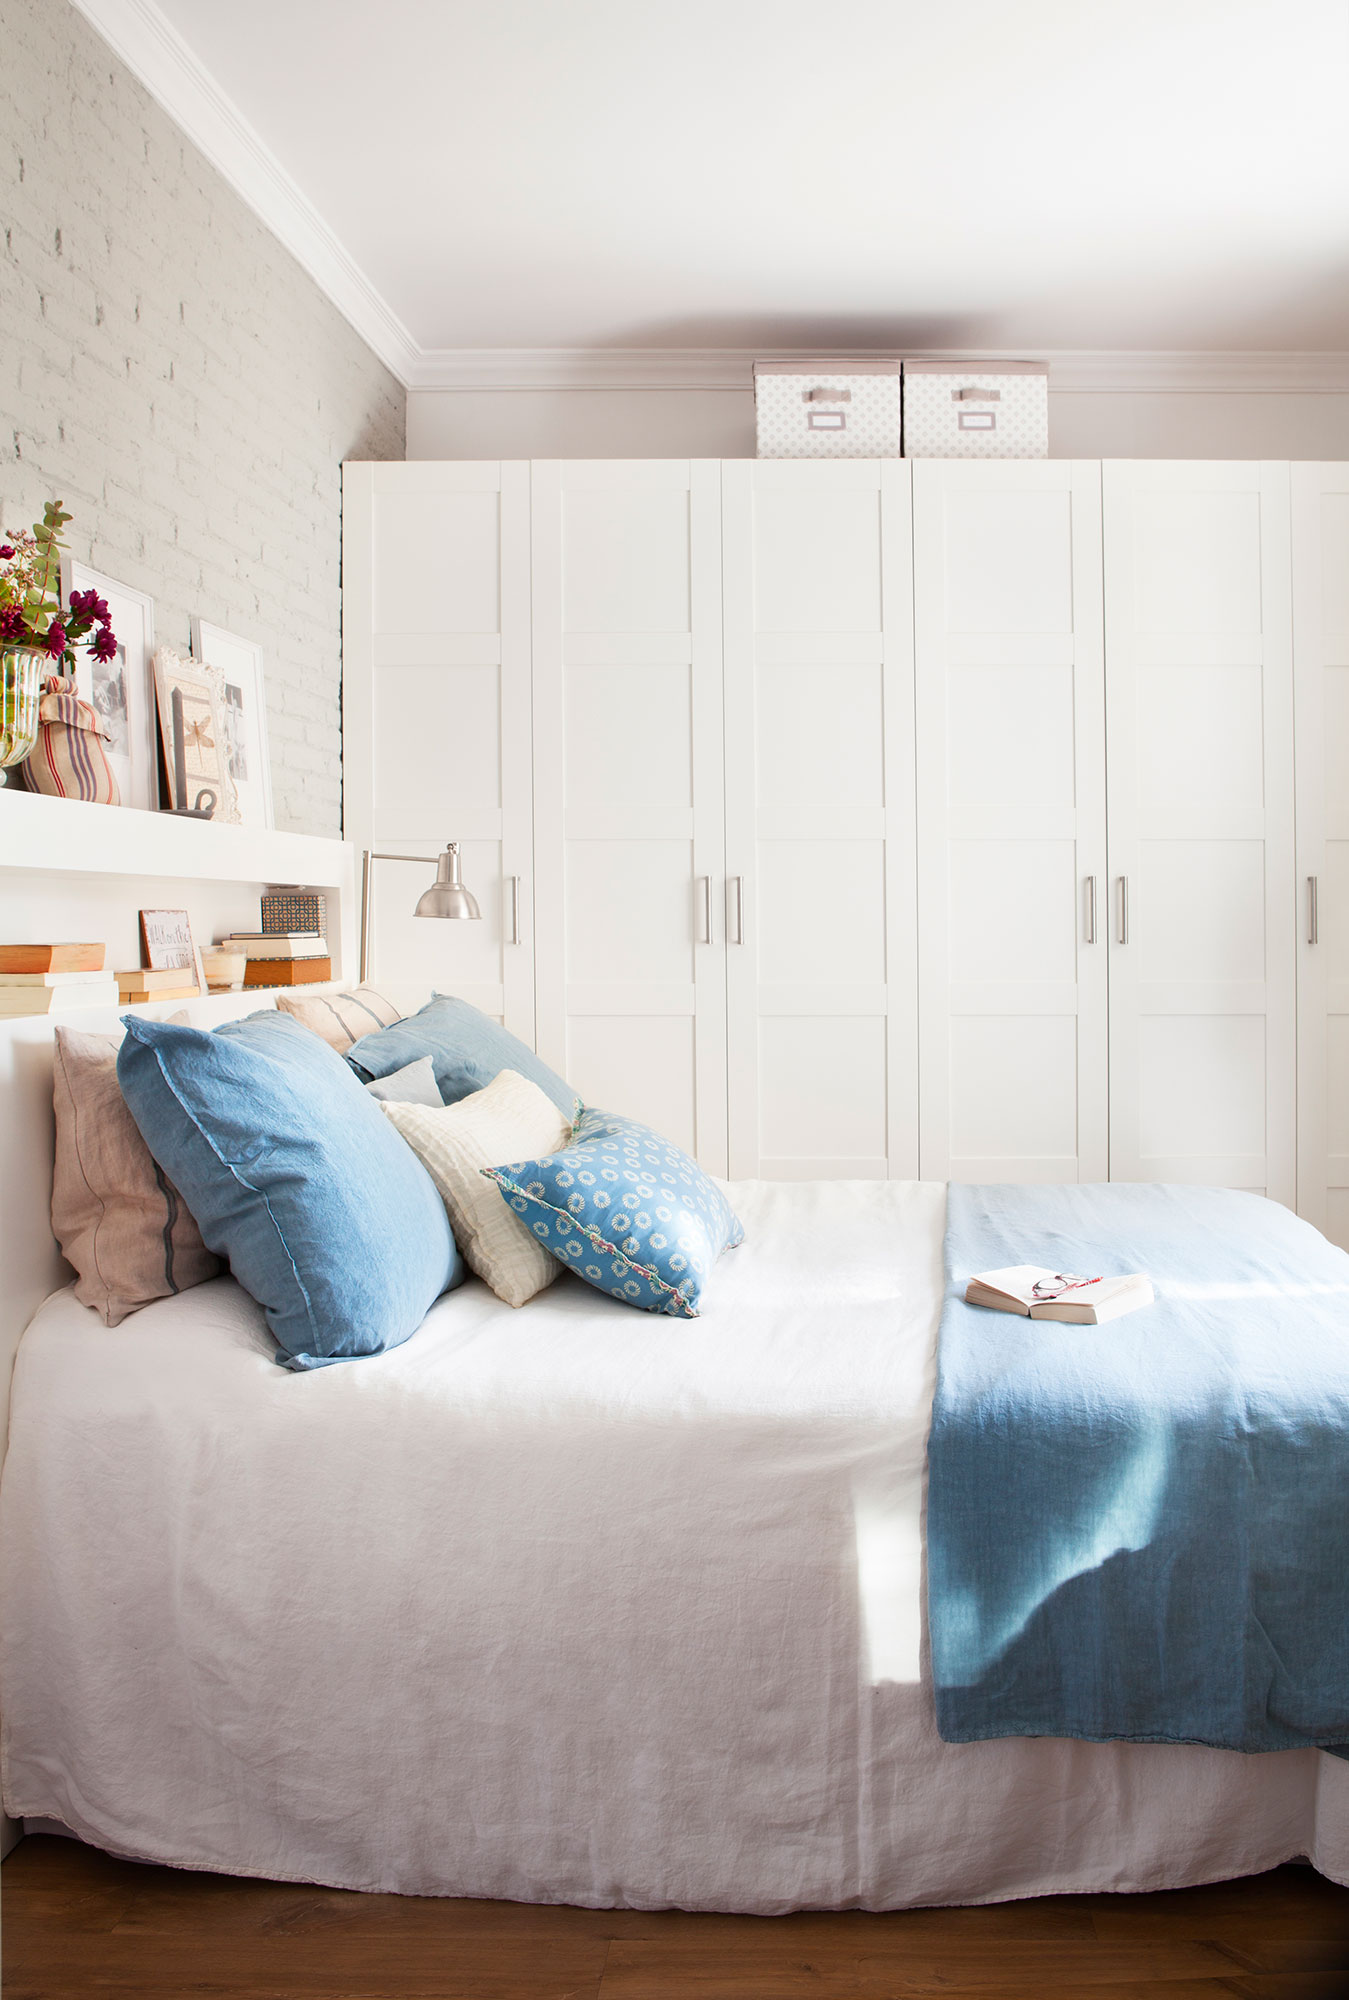 Compartir piso 10 ideas low cost para decorar tu dormitorio - Dormitorios con encanto decoracion ...